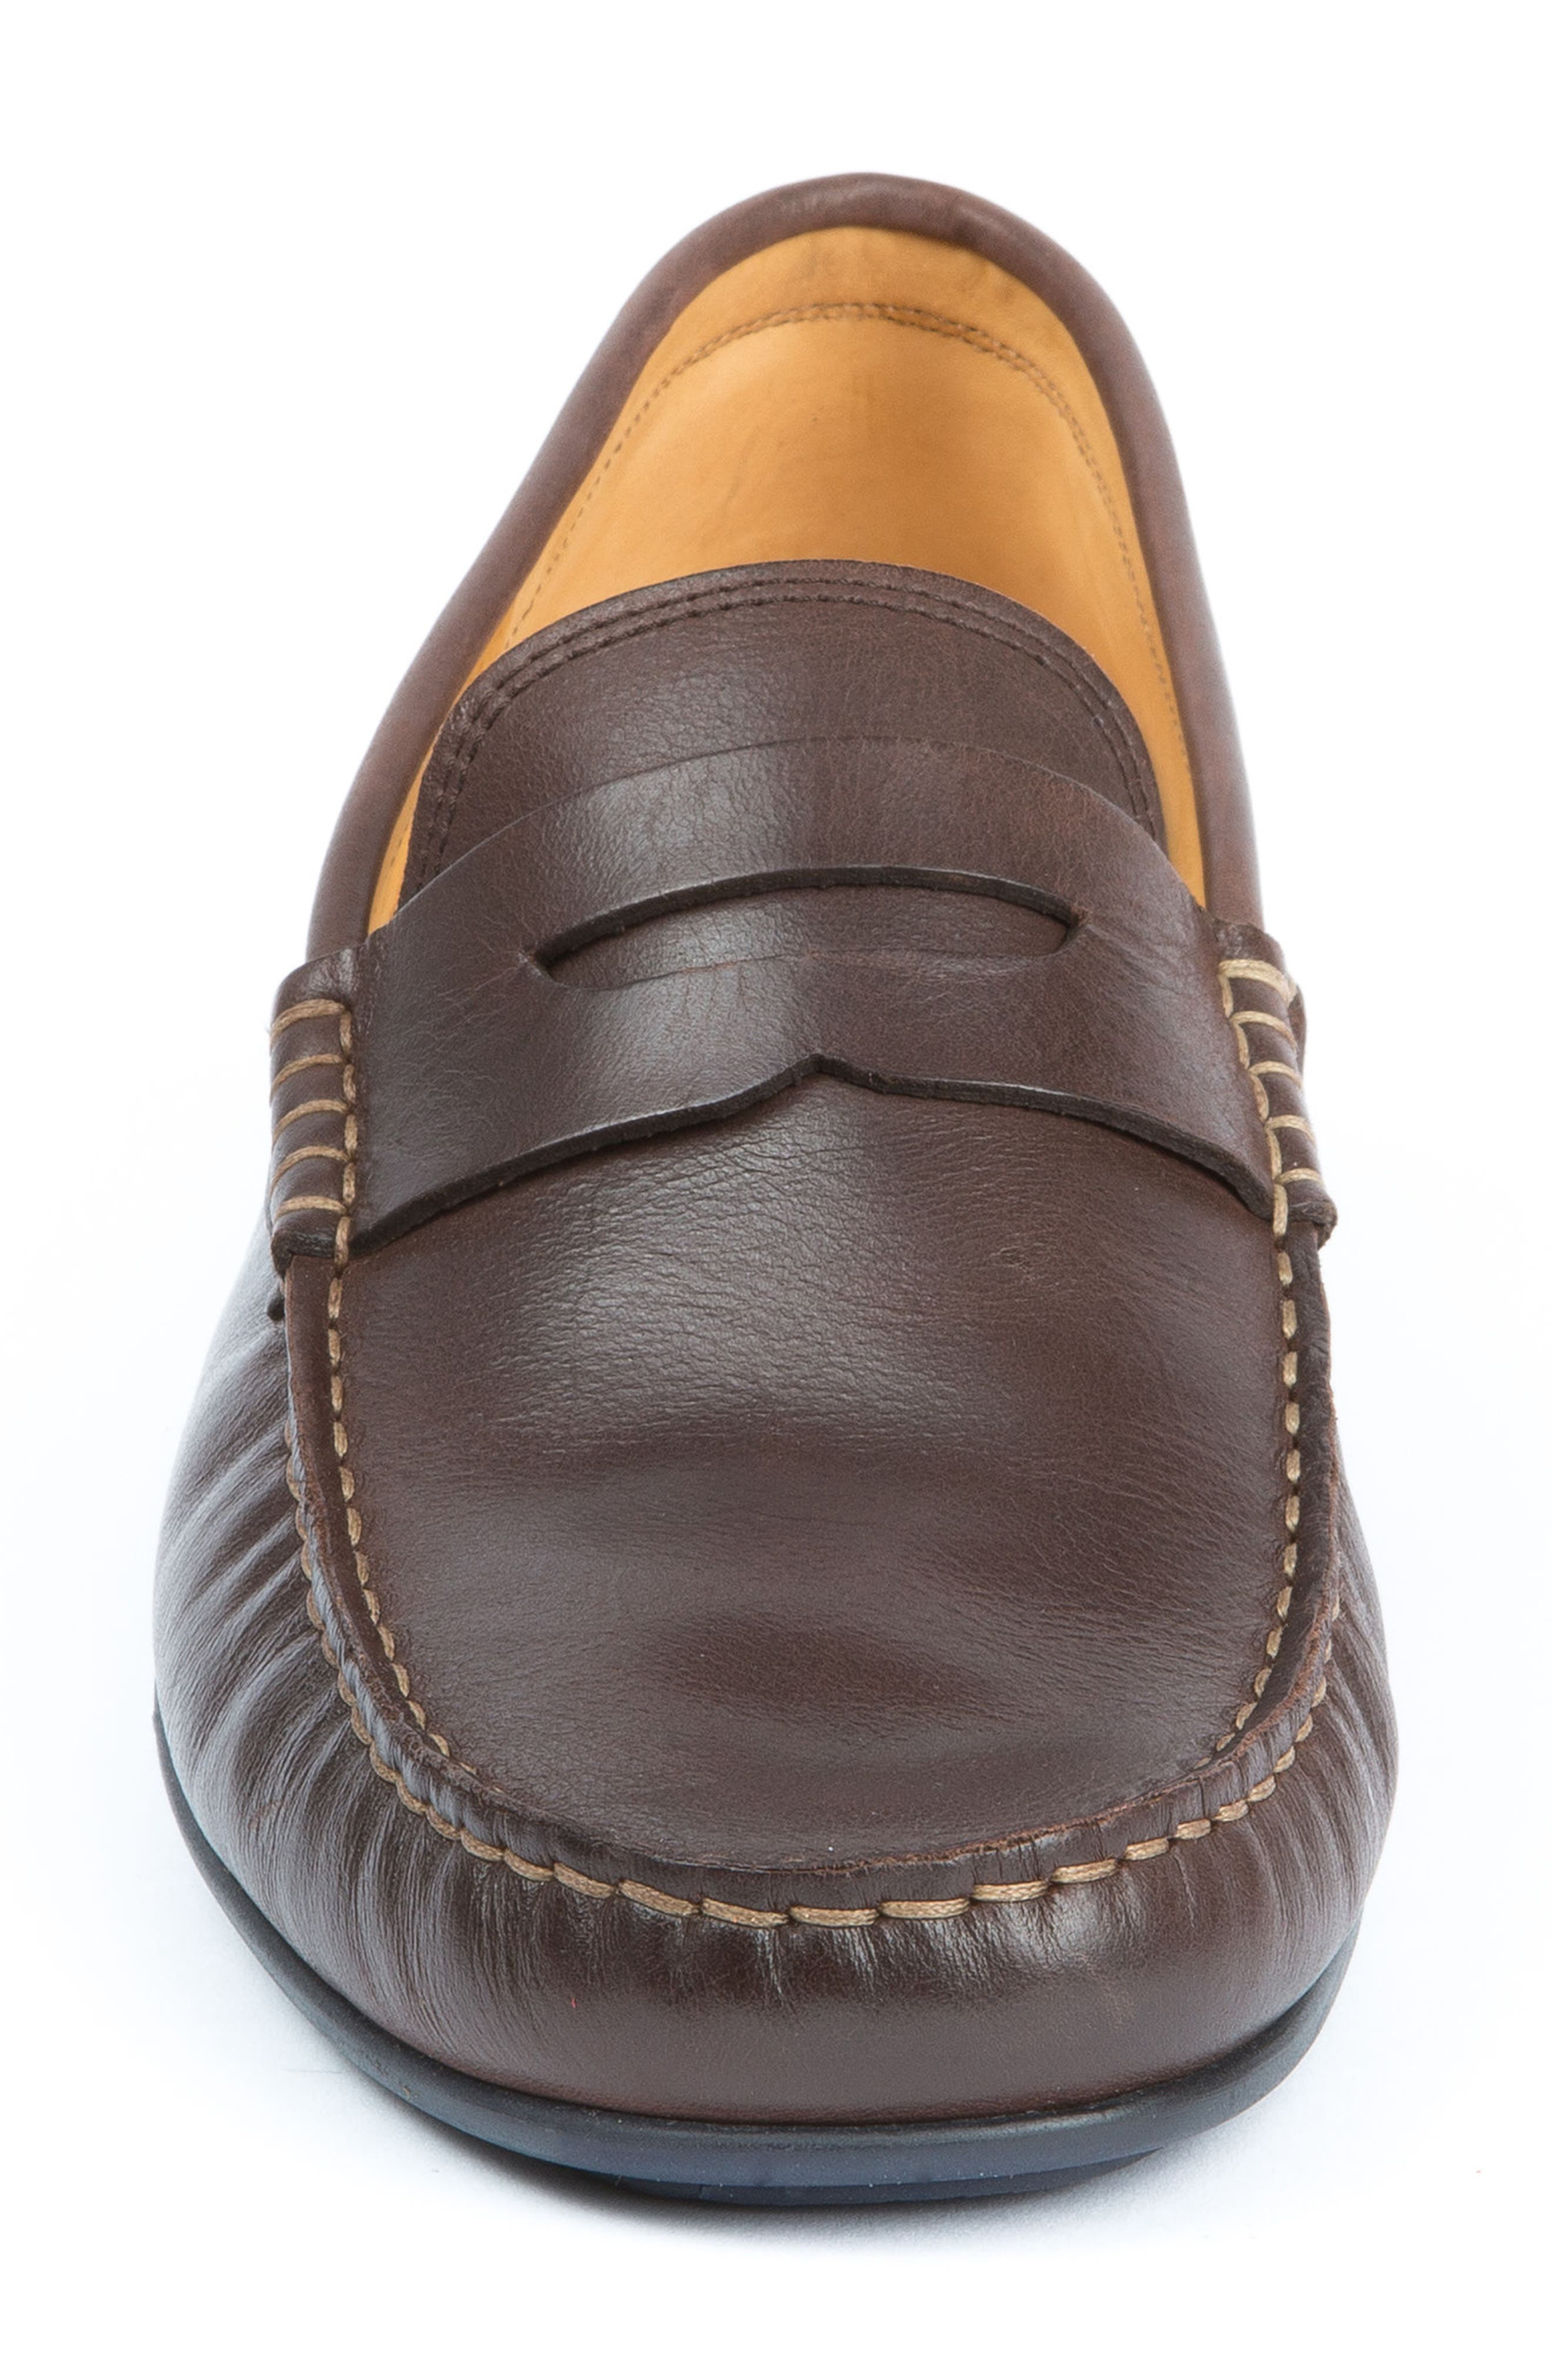 'Strattons' Driving Shoe,                             Alternate thumbnail 4, color,                             BROWN LEATHER/ NAVY